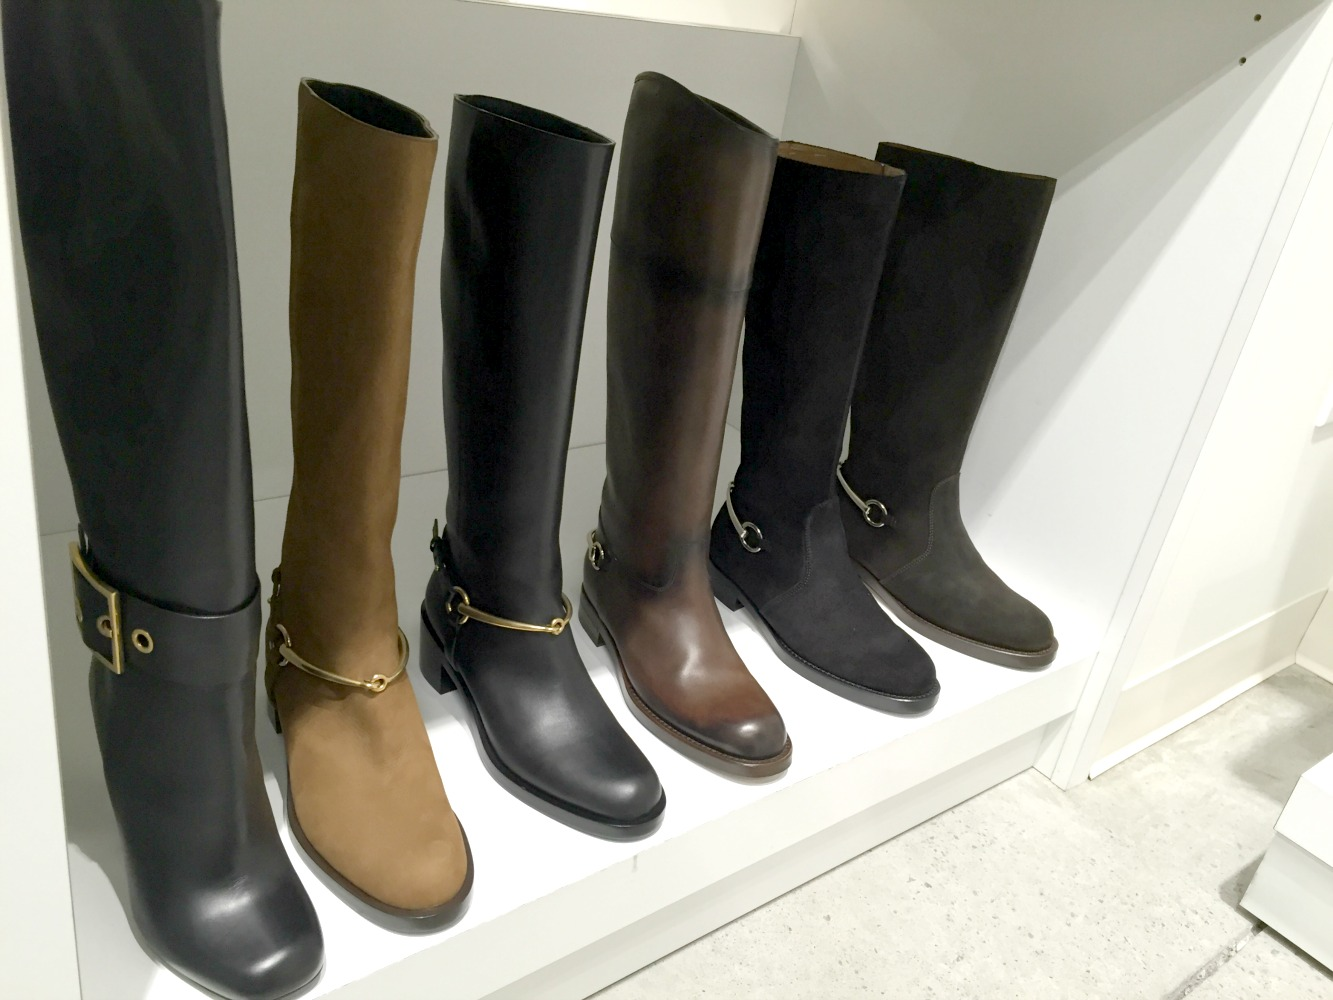 Gucci-Mirabel outlet-Montreal-boots